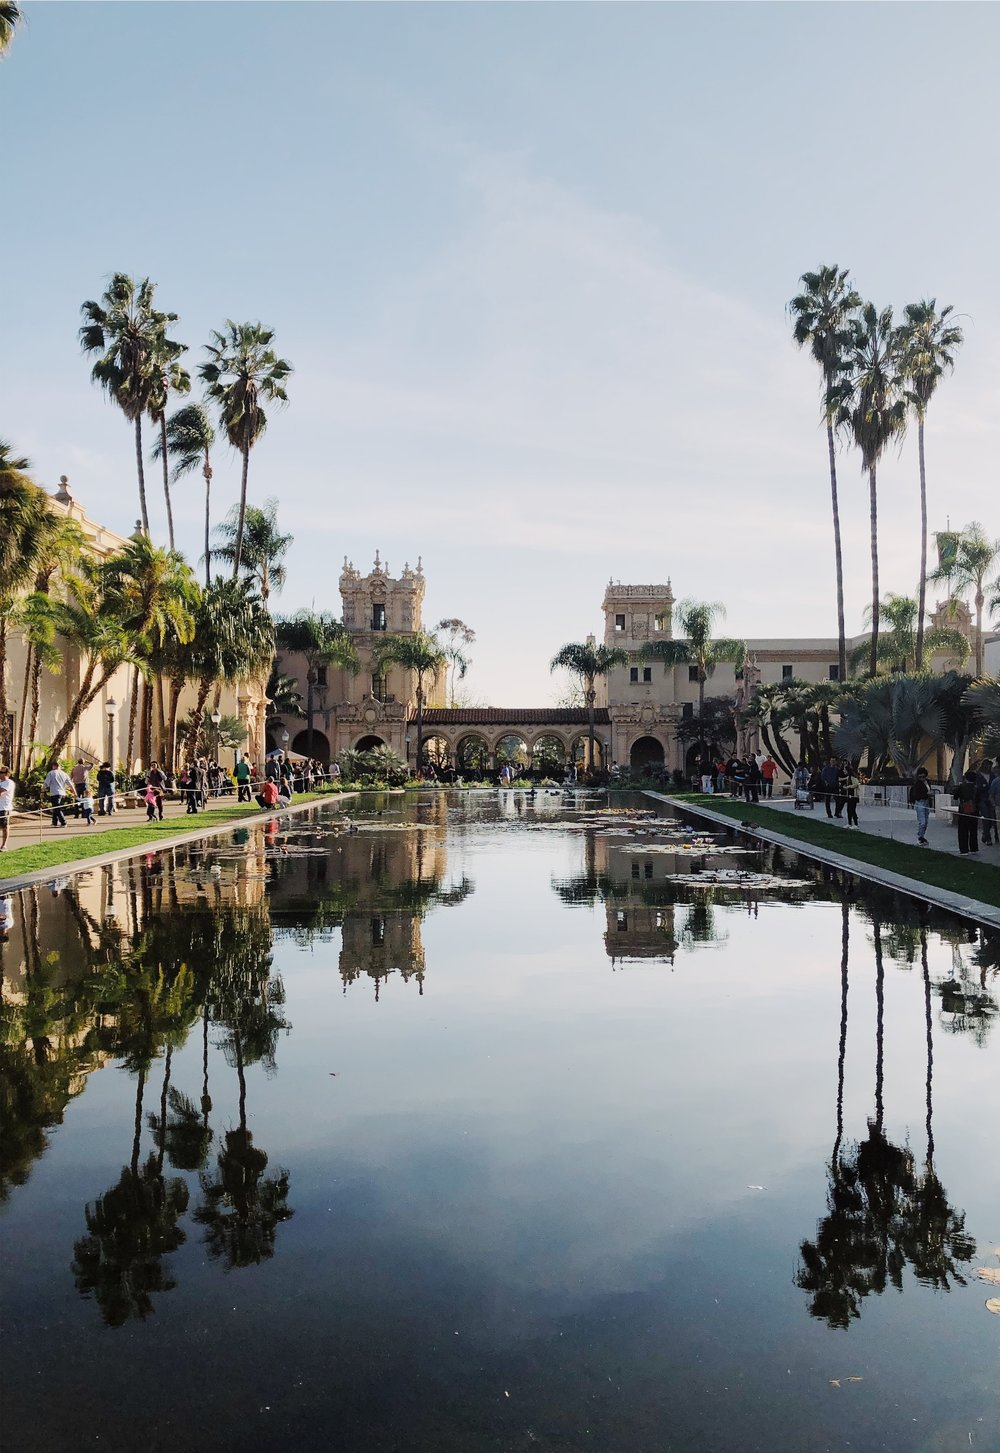 """Why head to LA for Disneyland when you can get lost in the crowds of Balboa Park? Joking aside, Balboa Park is a HUGE """"urban cultural park"""" home to the famous San Diego Zoo, sixteen museums, gardens, restaurants, theaters and more. -"""